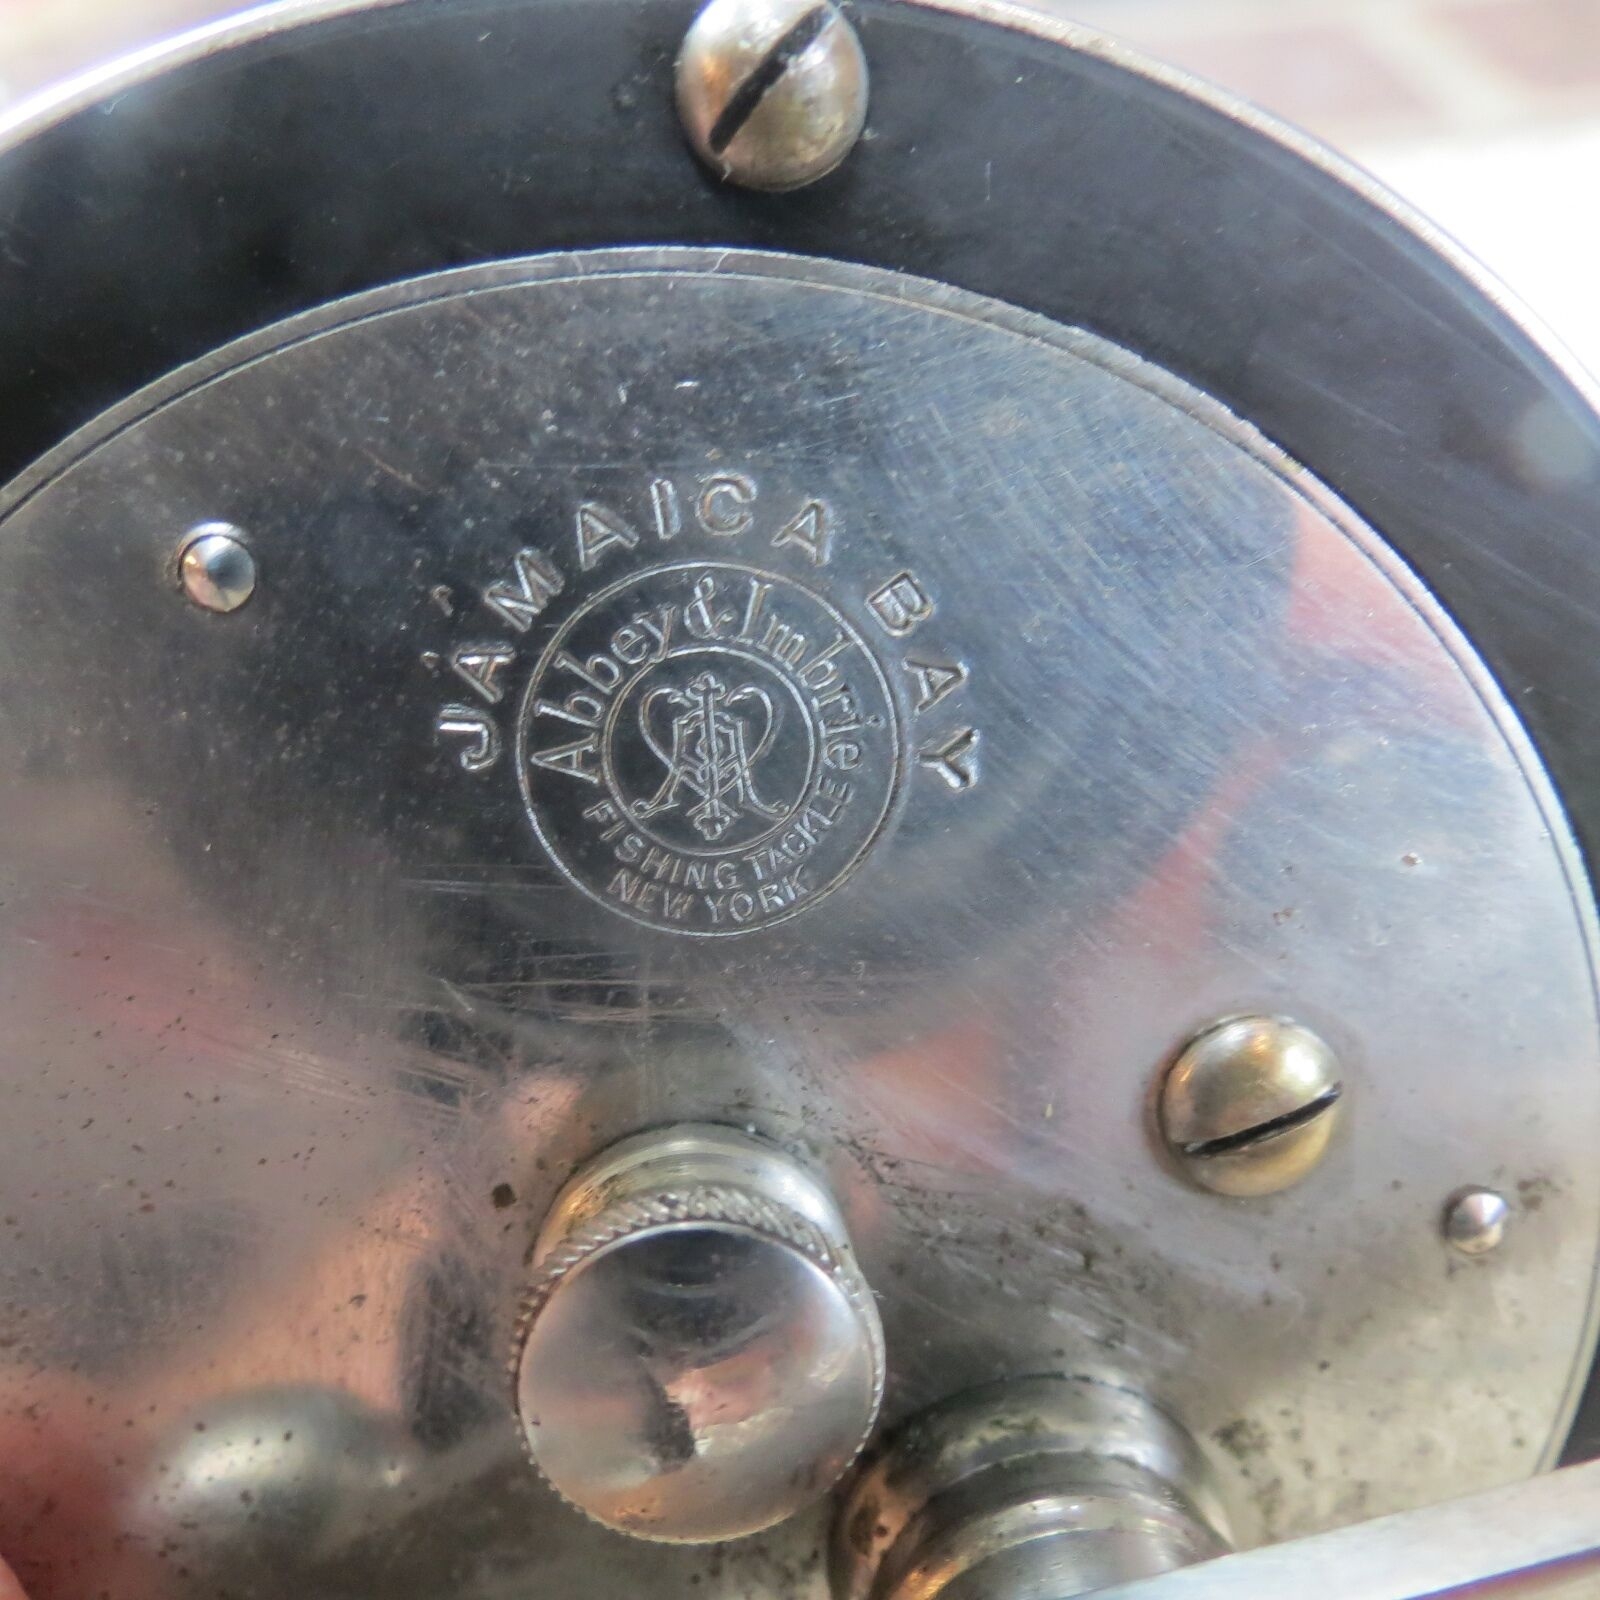 Abbey & Imbrie Jamaica Bay fishing reel (lot 7286)